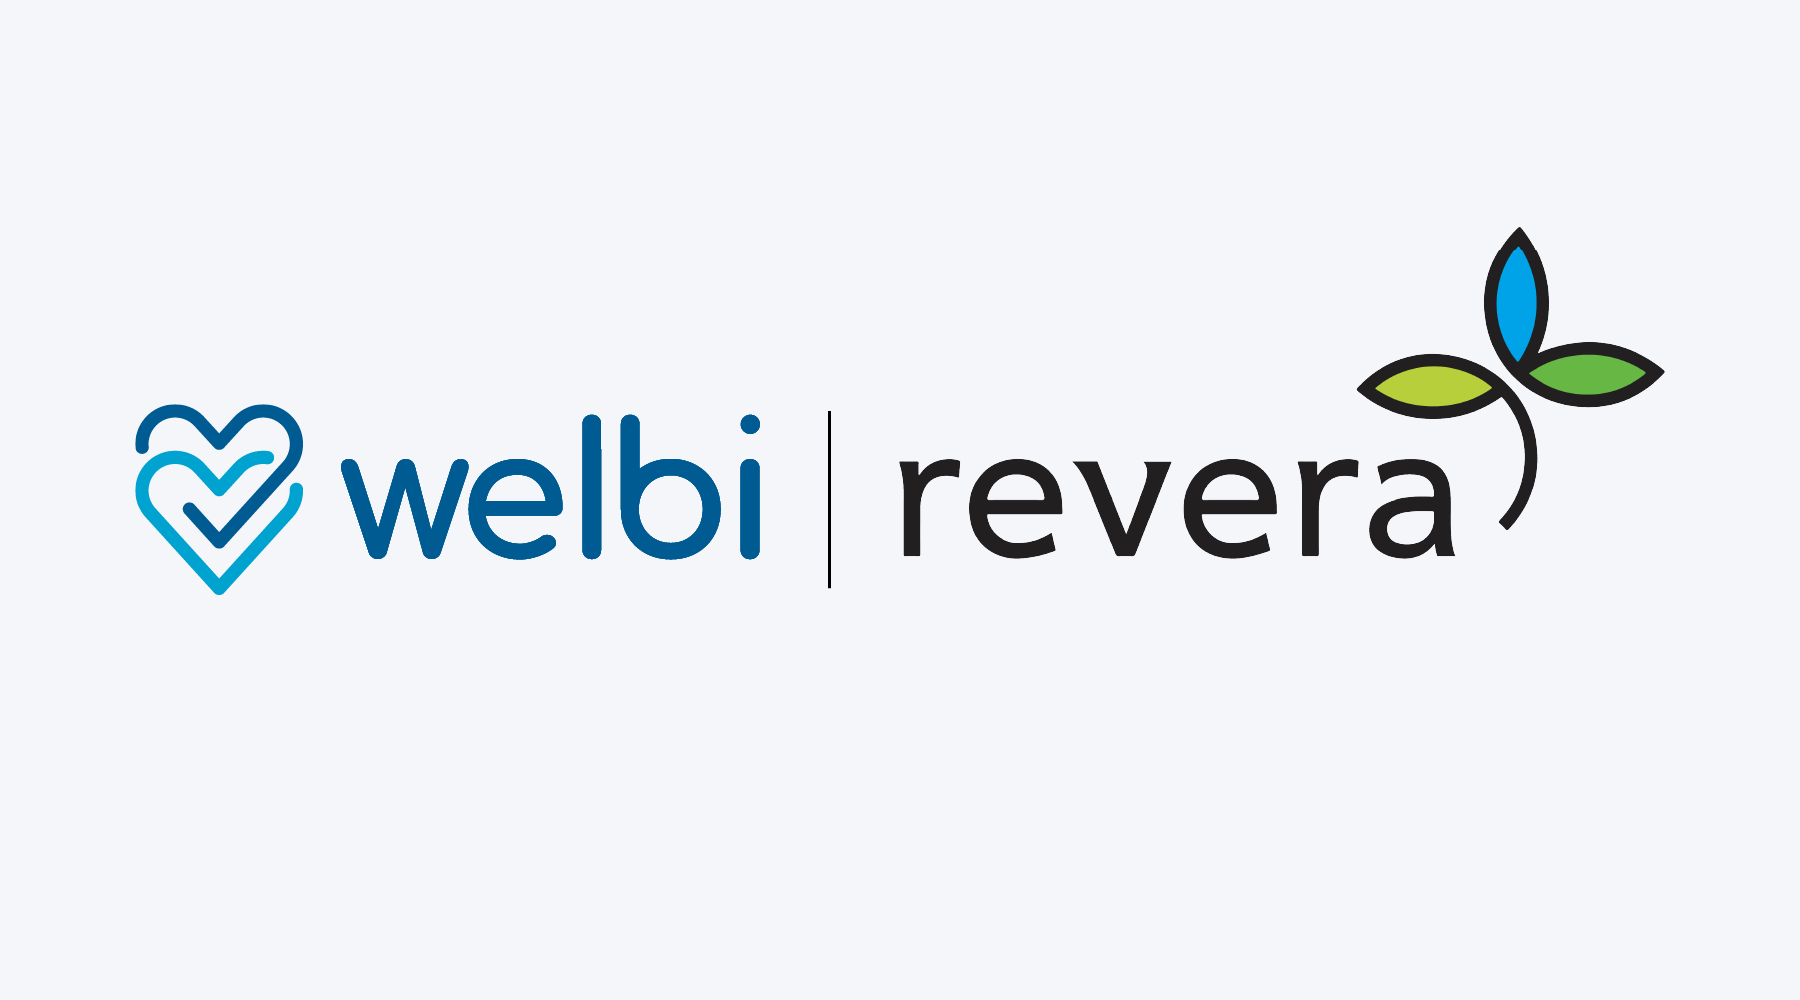 Revera chooses Welbi to personalize recreation programs for retirement living residents to reduce social isolation